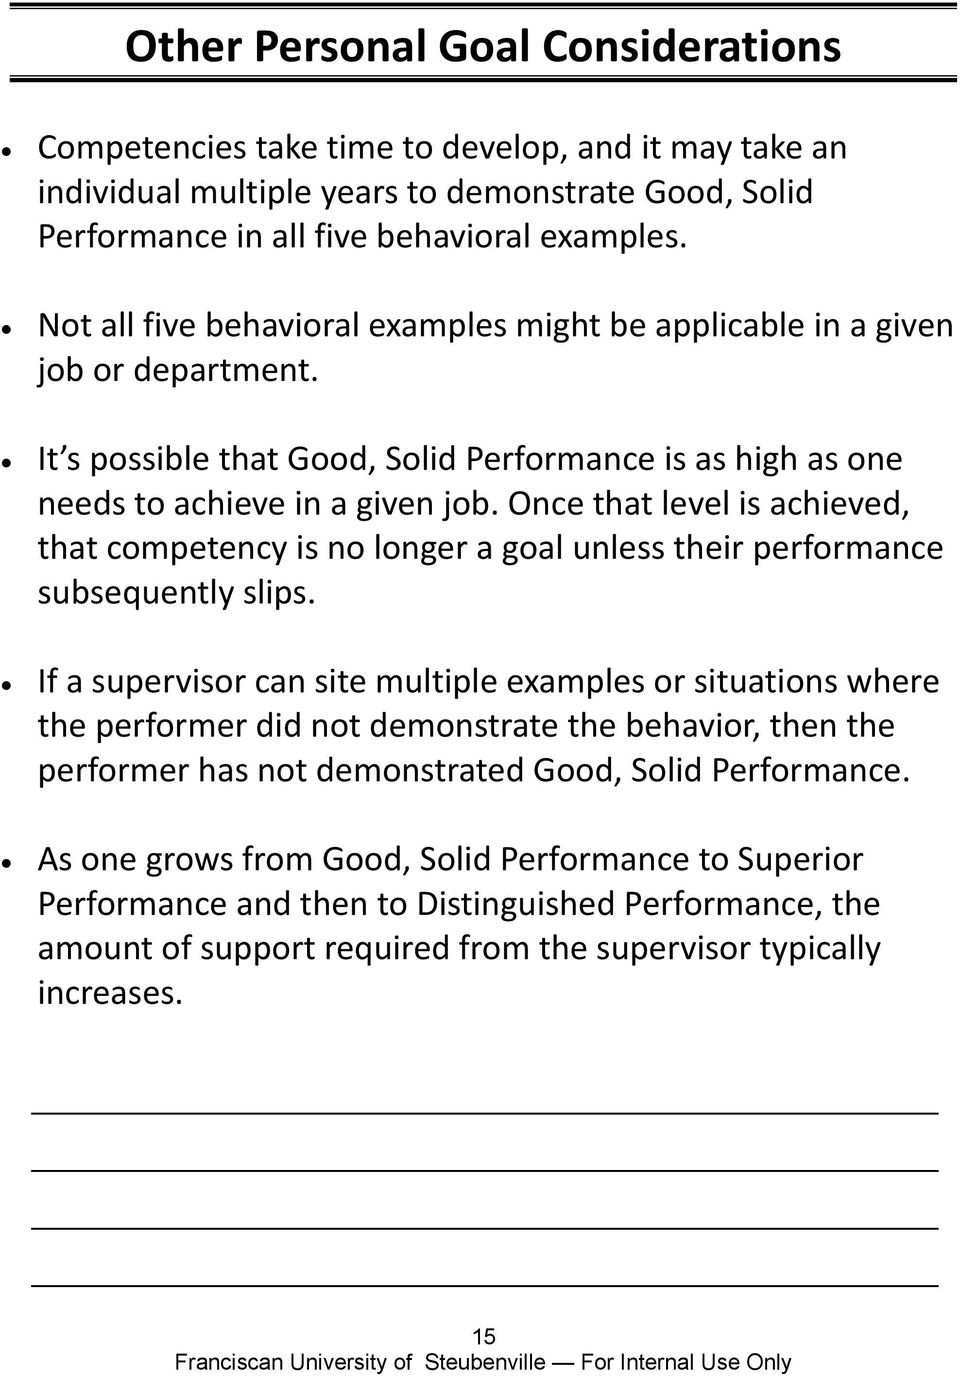 Once that level is achieved, that competency is no longer a goal unless their performance subsequently slips.